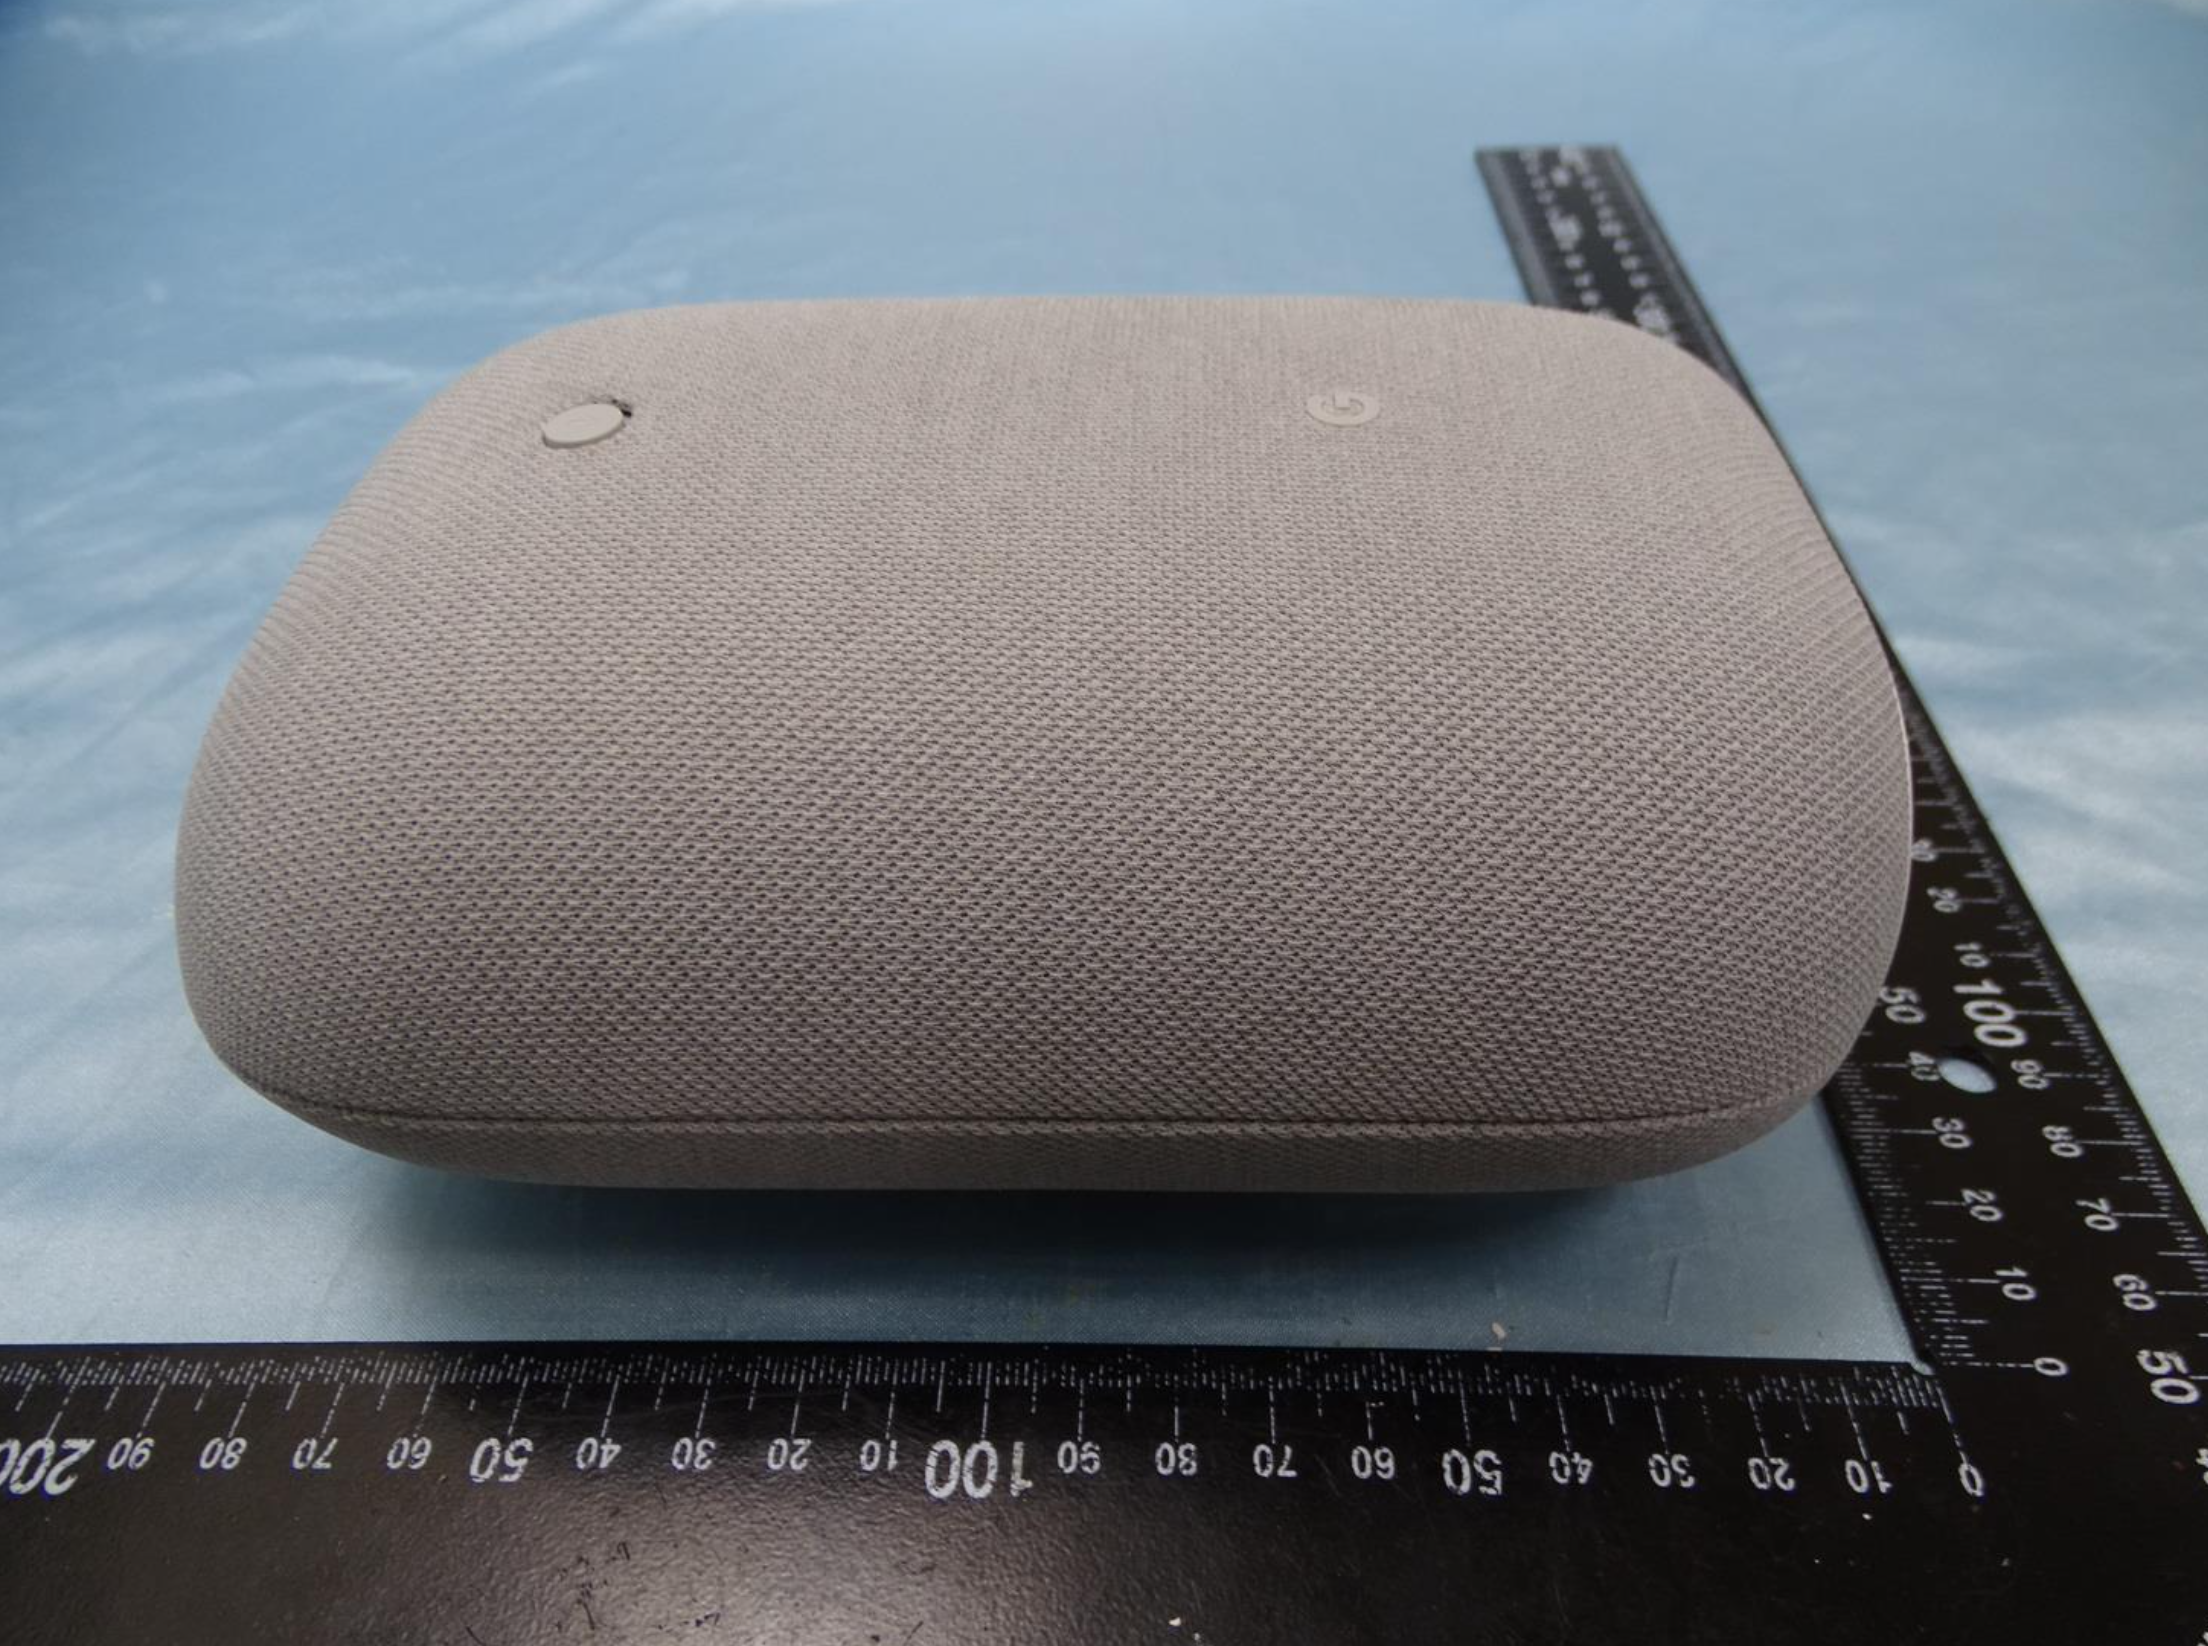 Upcoming Google Nest smart speaker emerges in regulatory filing